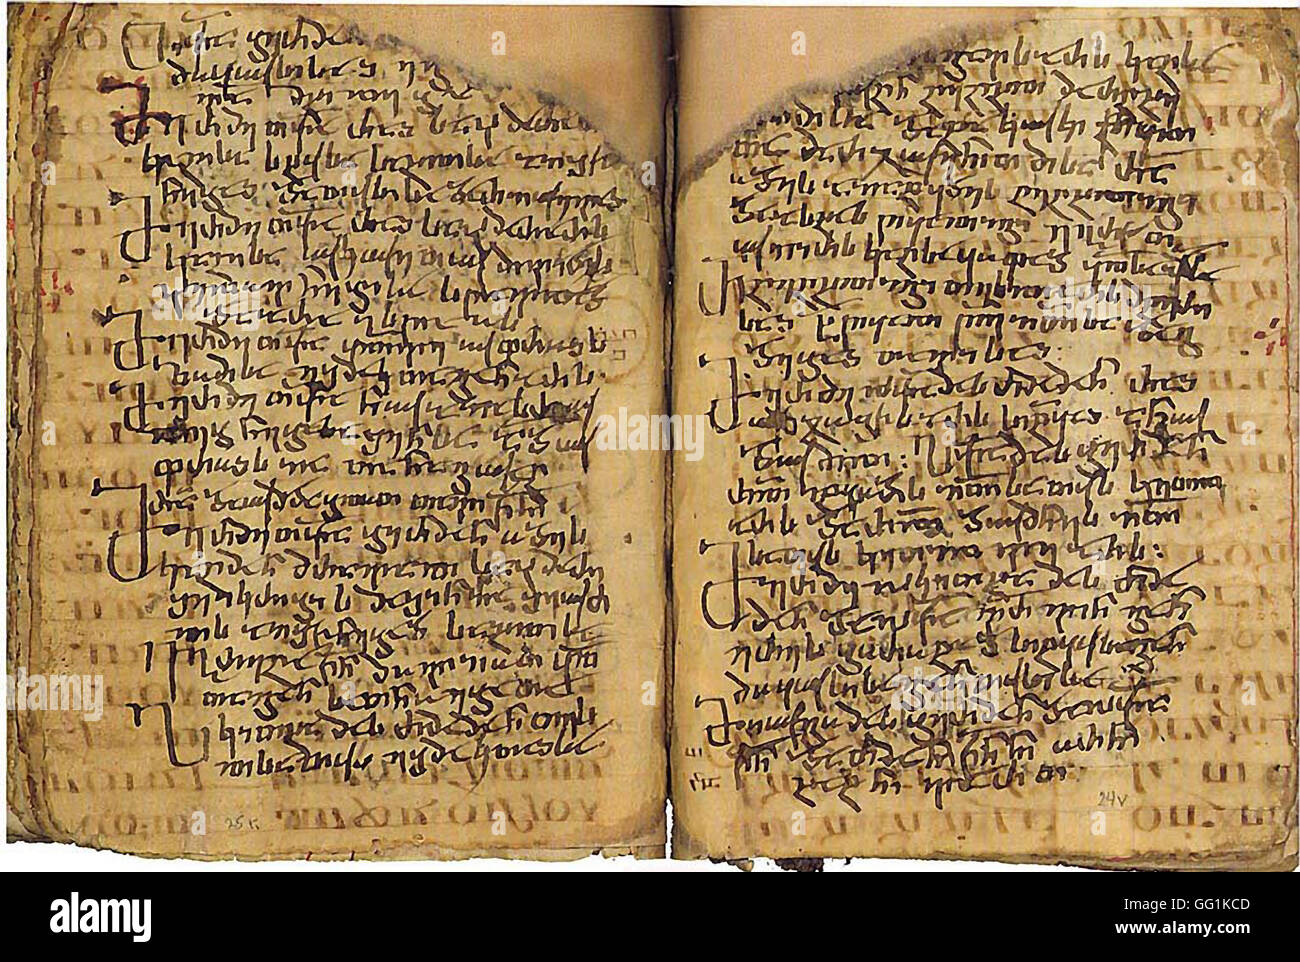 5930. Codex Sinaticus, 4th. C. Greek texts of the New Testament Christian-Palestinian Aramaic. The monastery of - Stock Image